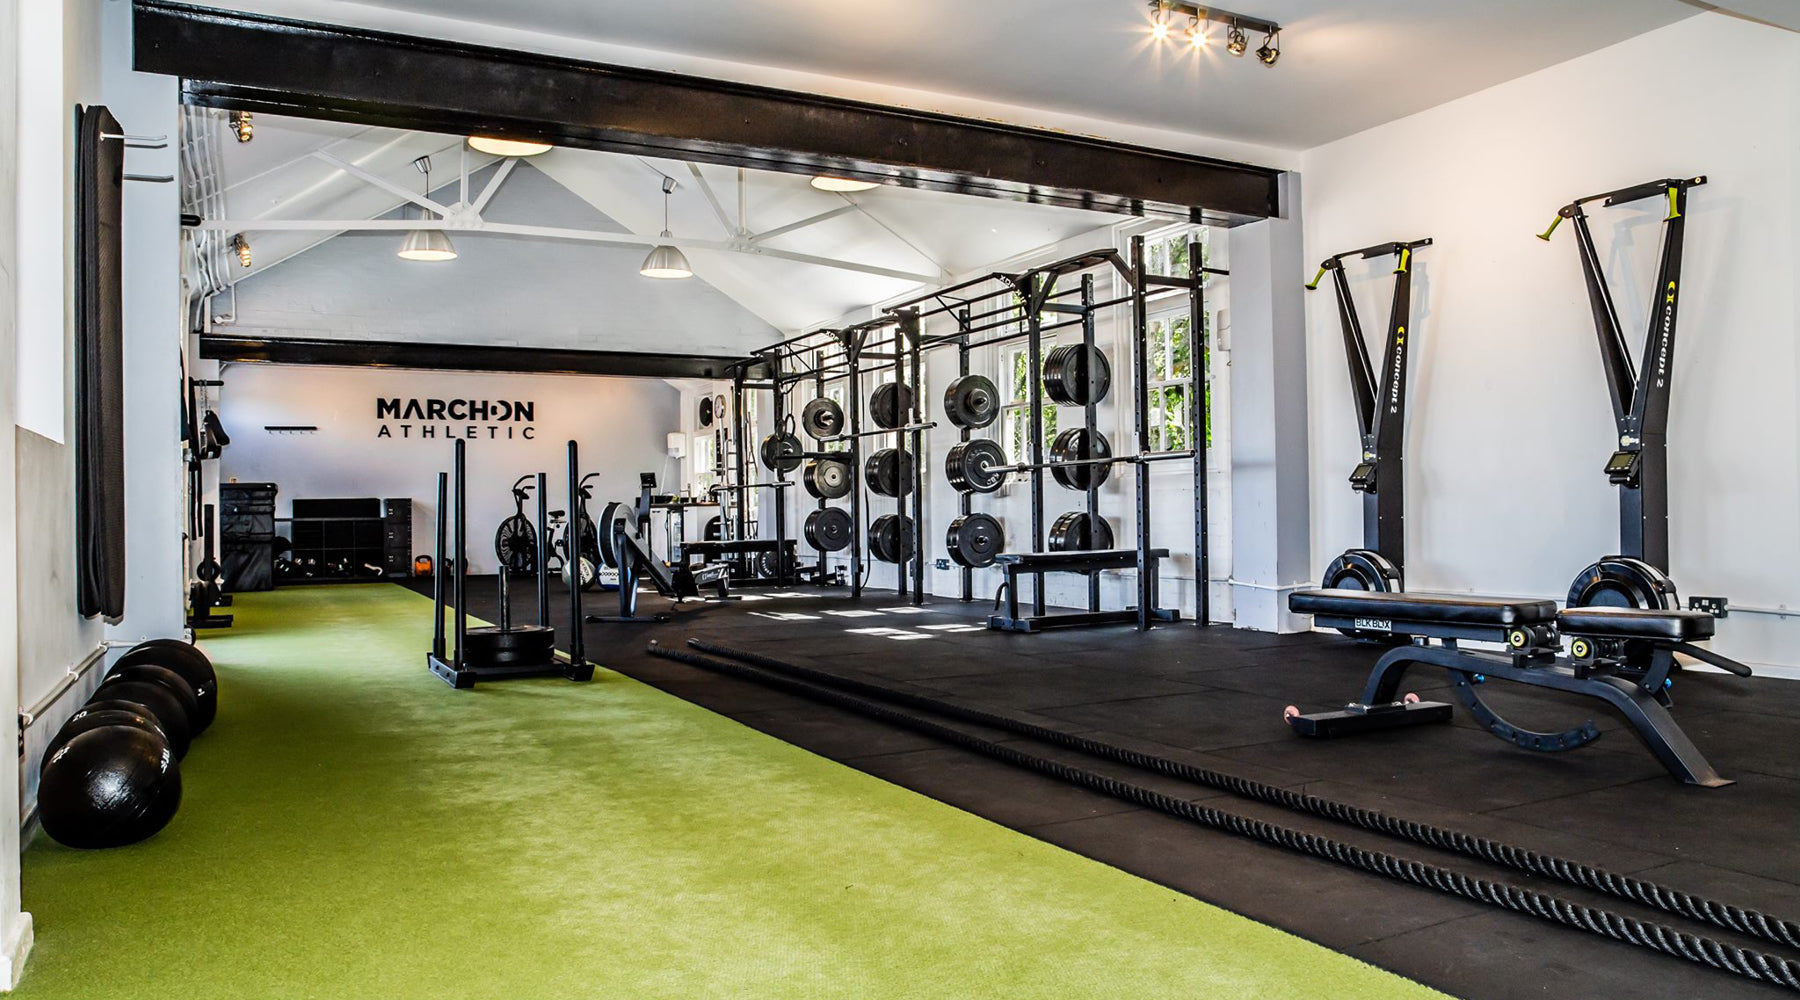 Marchon Athletic Gym